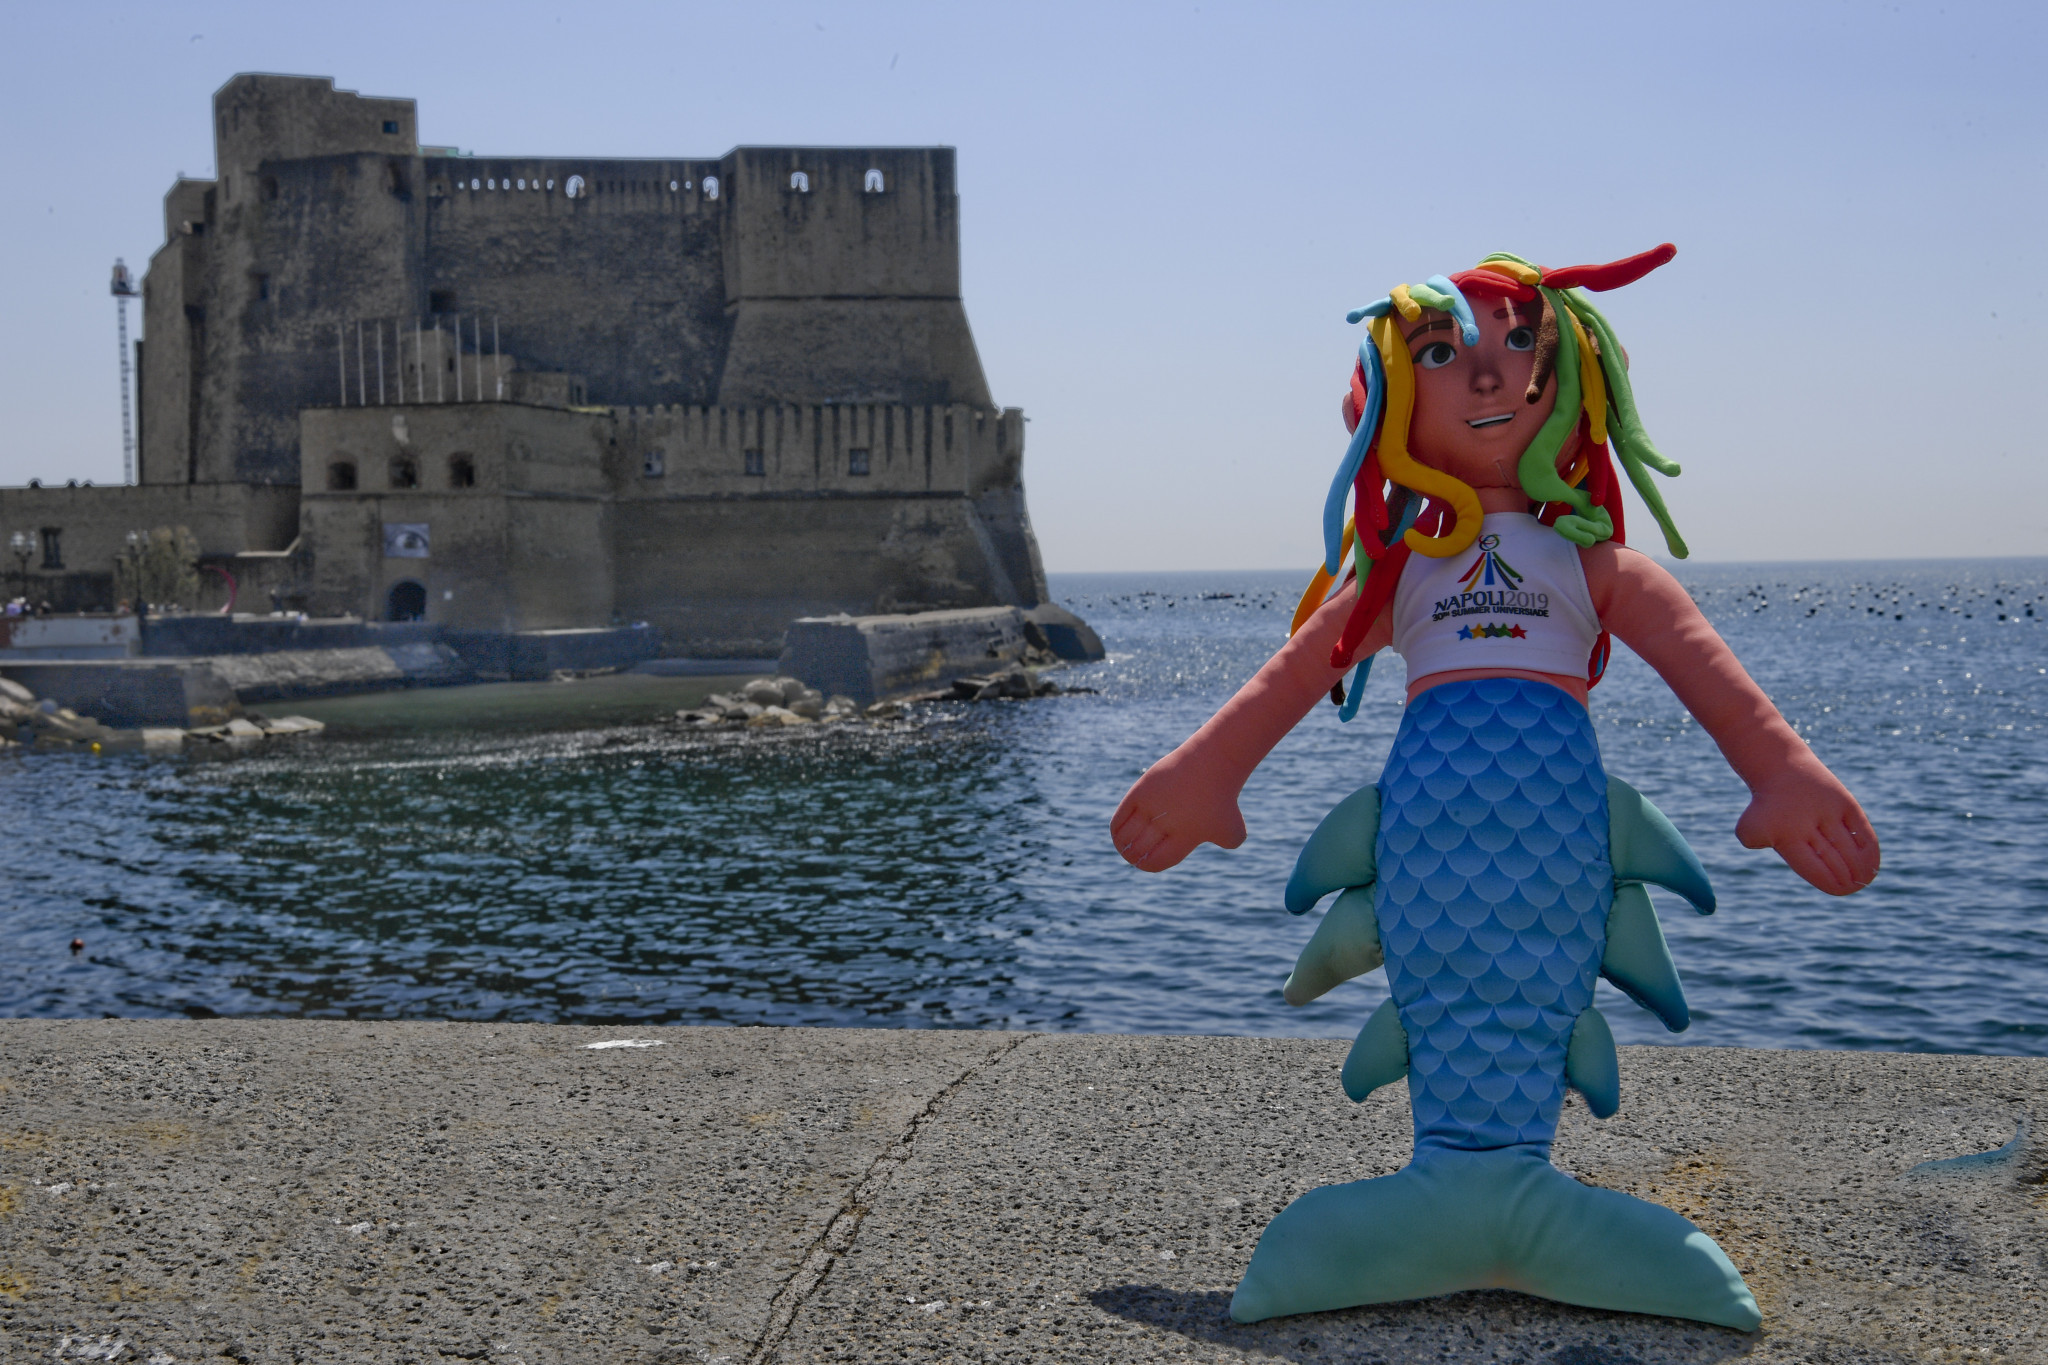 Partenope was the mascot for the 2019 event in Naples ©Naples 2019